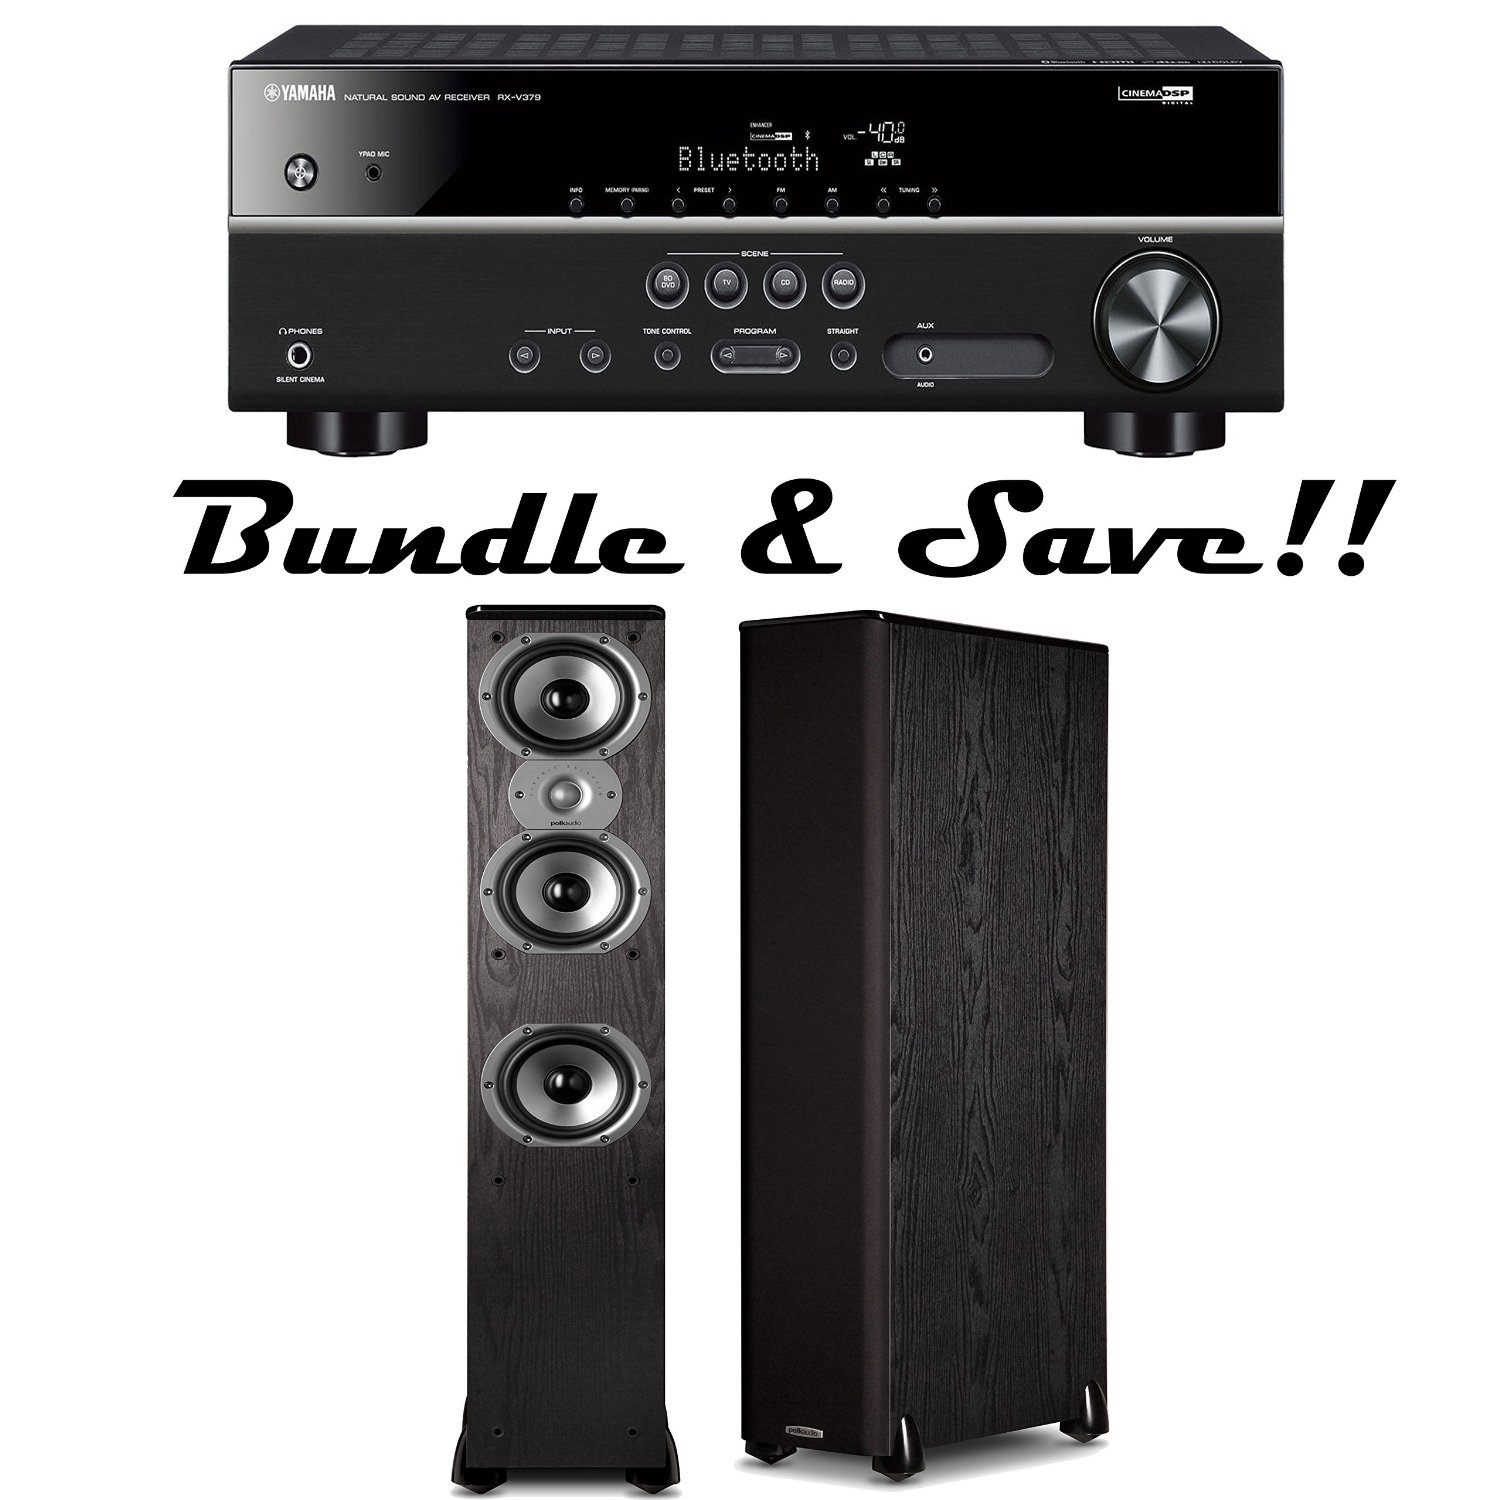 Yamaha RX-V379BL 5.1 Channel Network A/V Bluetooth Receiver Plus A Pair of Polk Audio TSi 400 Floorstanding Loudspeakers